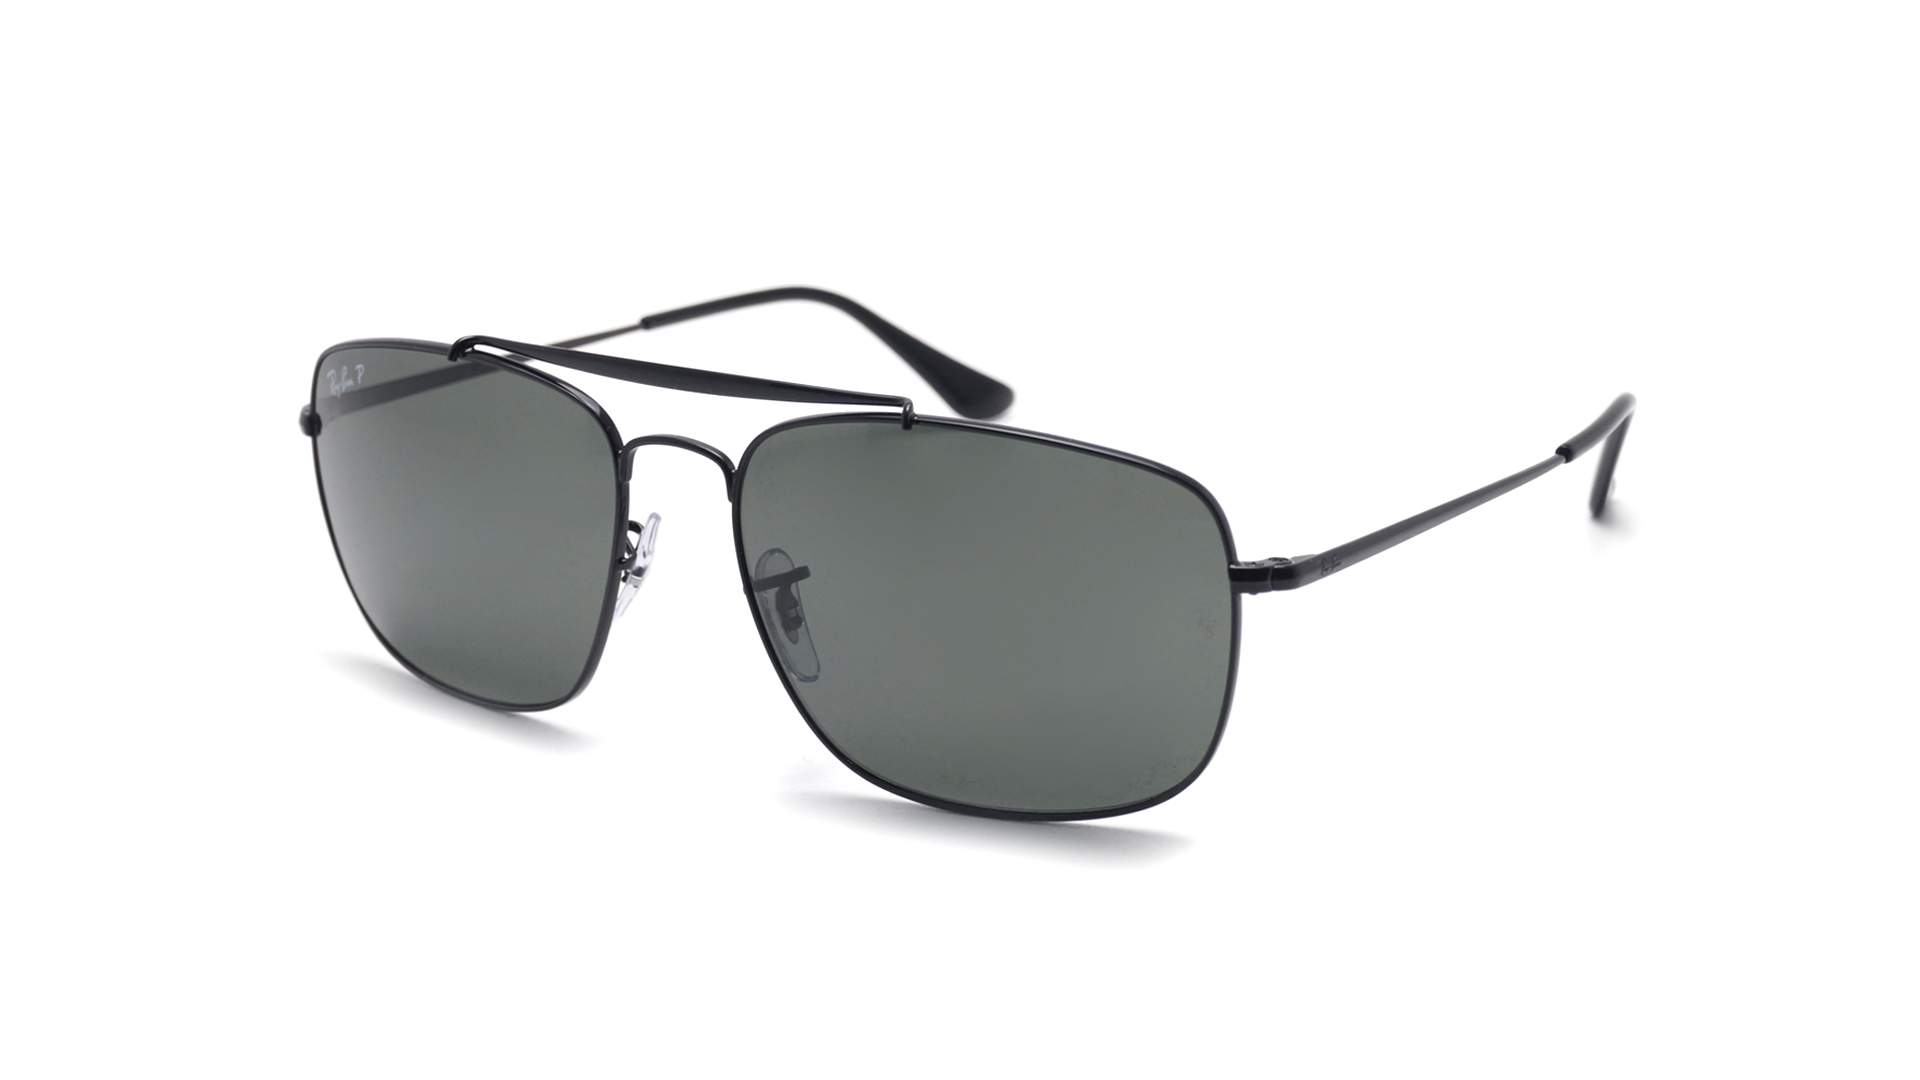 aff70f4bf4 Sunglasses Ray-Ban The colonel Black Matte RB3560 002 58 61-17 Large  Polarized